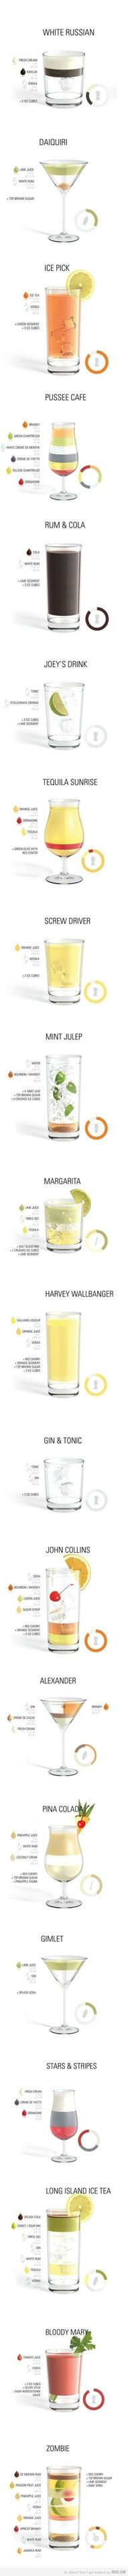 Visual Drink Guide